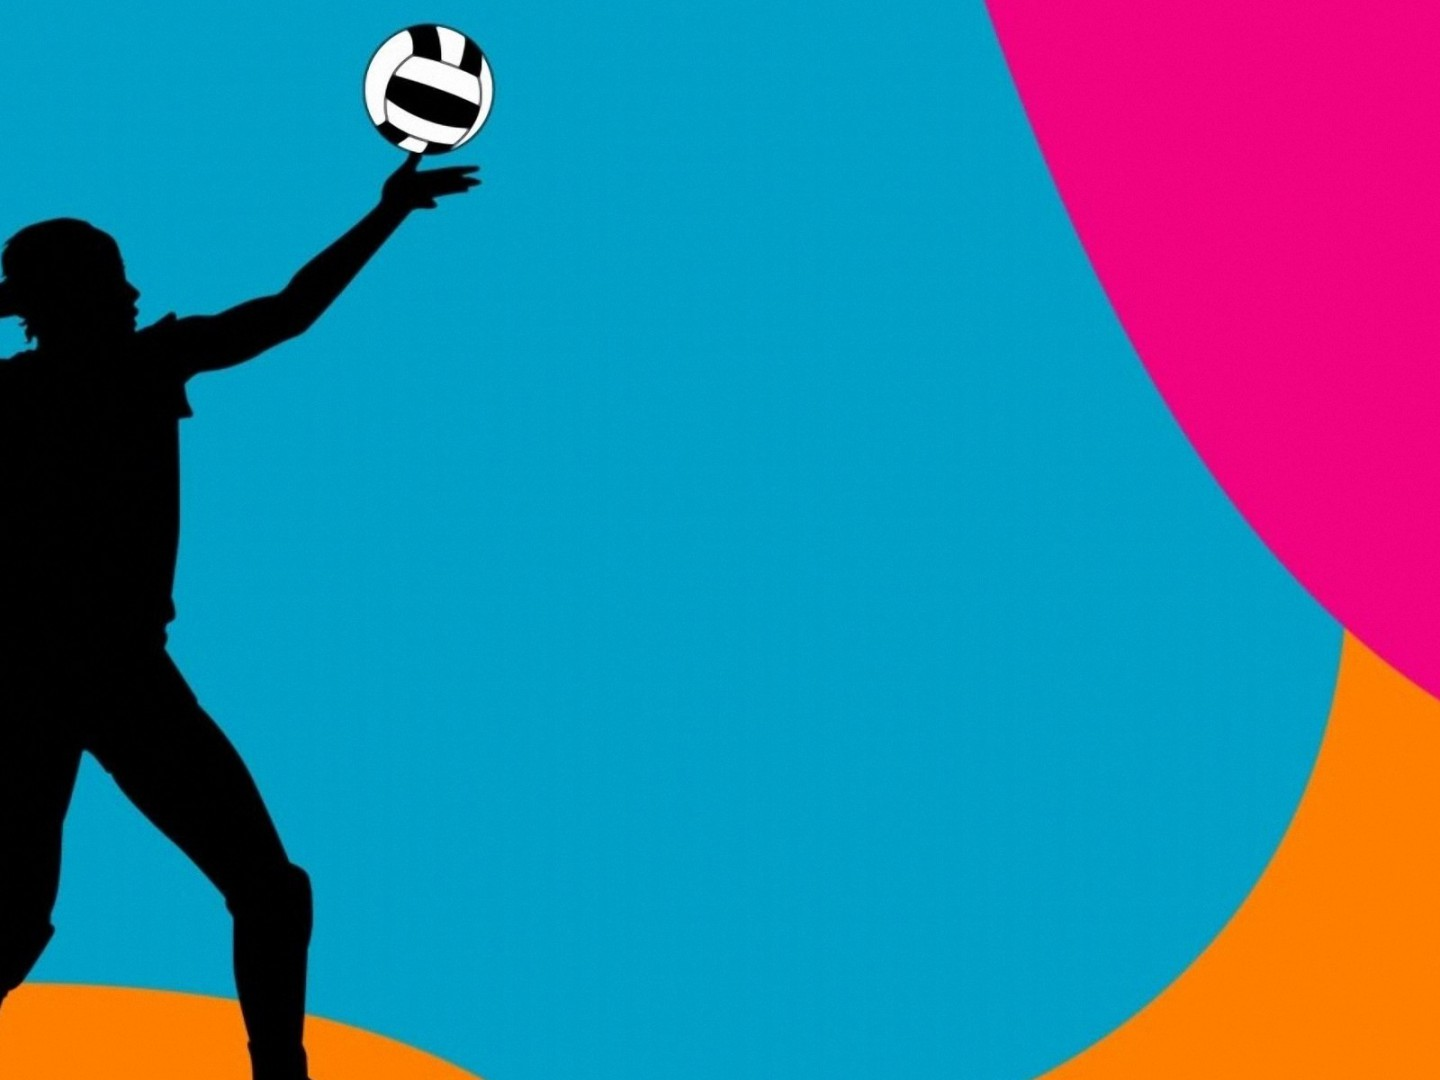 colorful volleyball ball backgrounds Colorful Volleyball Background 1440x1080